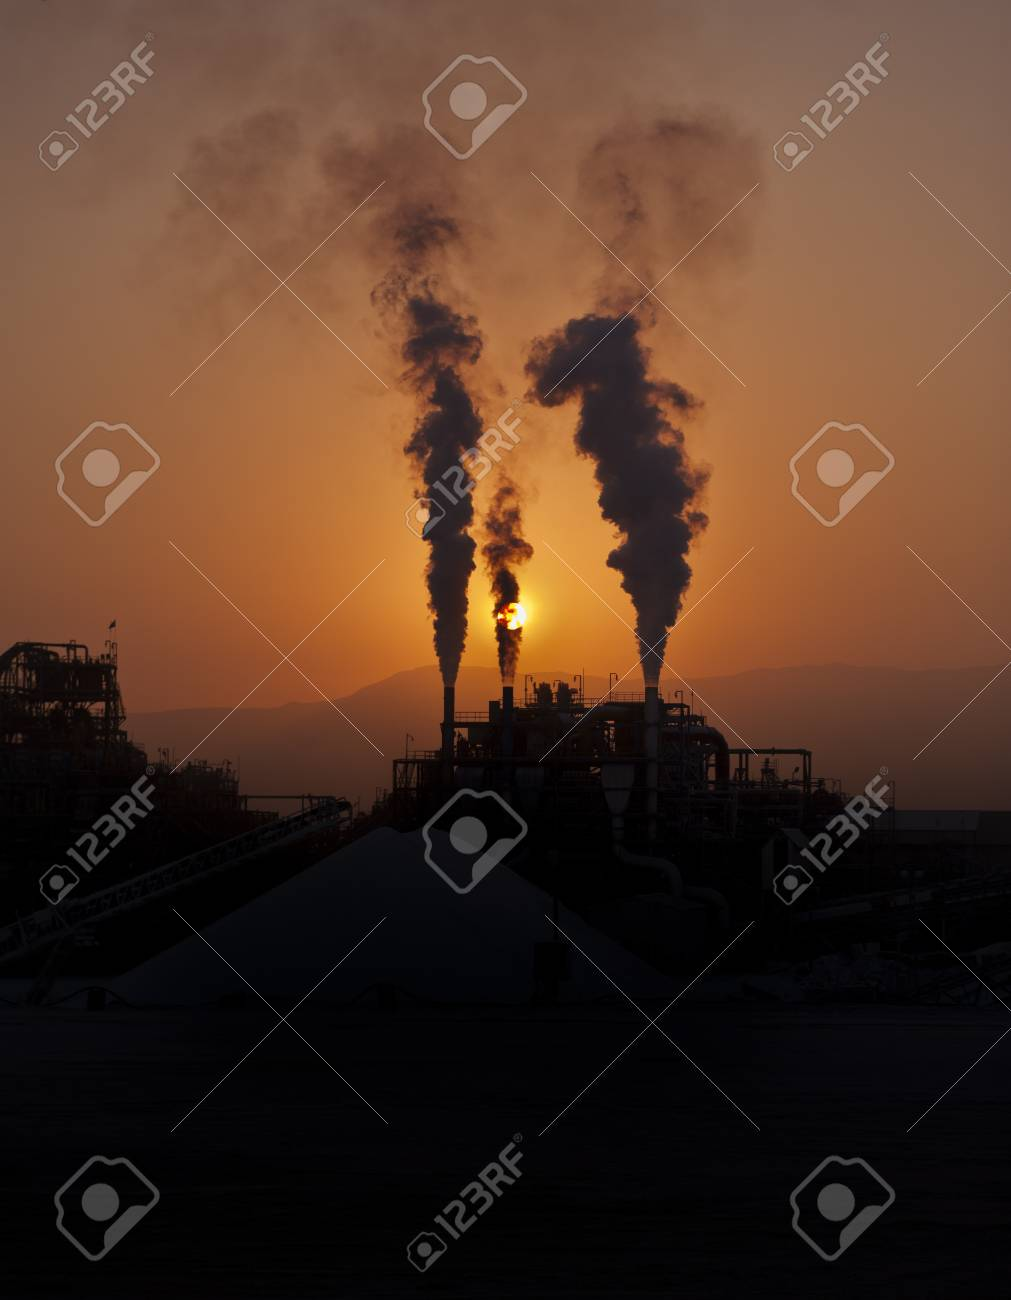 Industry blowing fumes into the air Stock Photo - 8357493